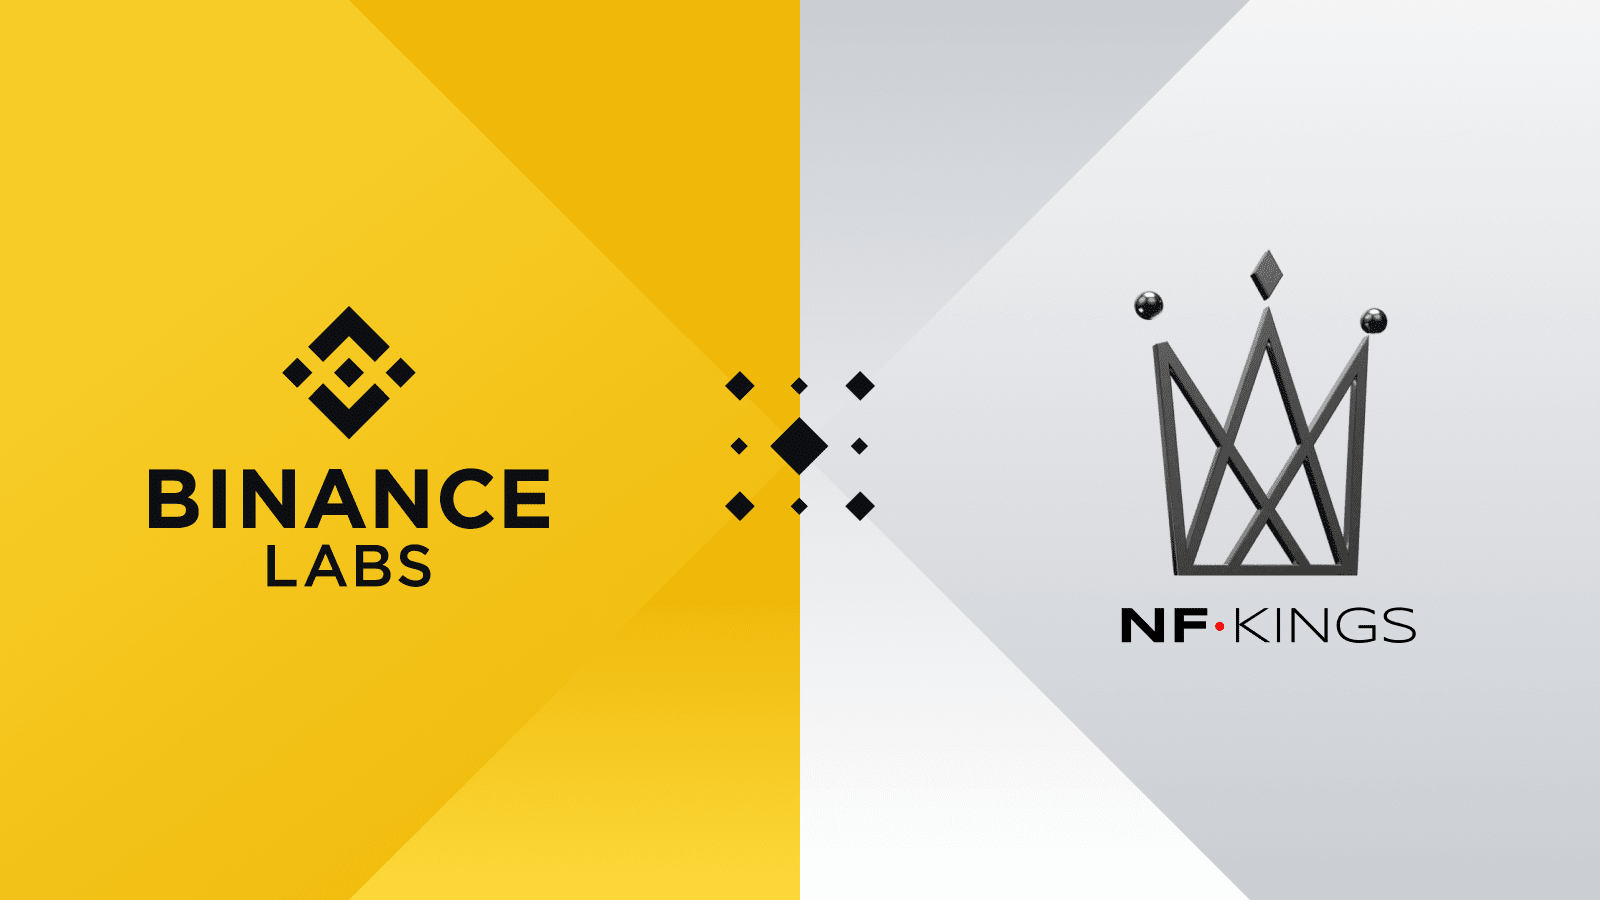 Binance Labs Announces Strategic Investment in NFKings, NFT Creatives and Production CompanyCryptocurrency Trading Signals, Strategies & Templates   DexStrats